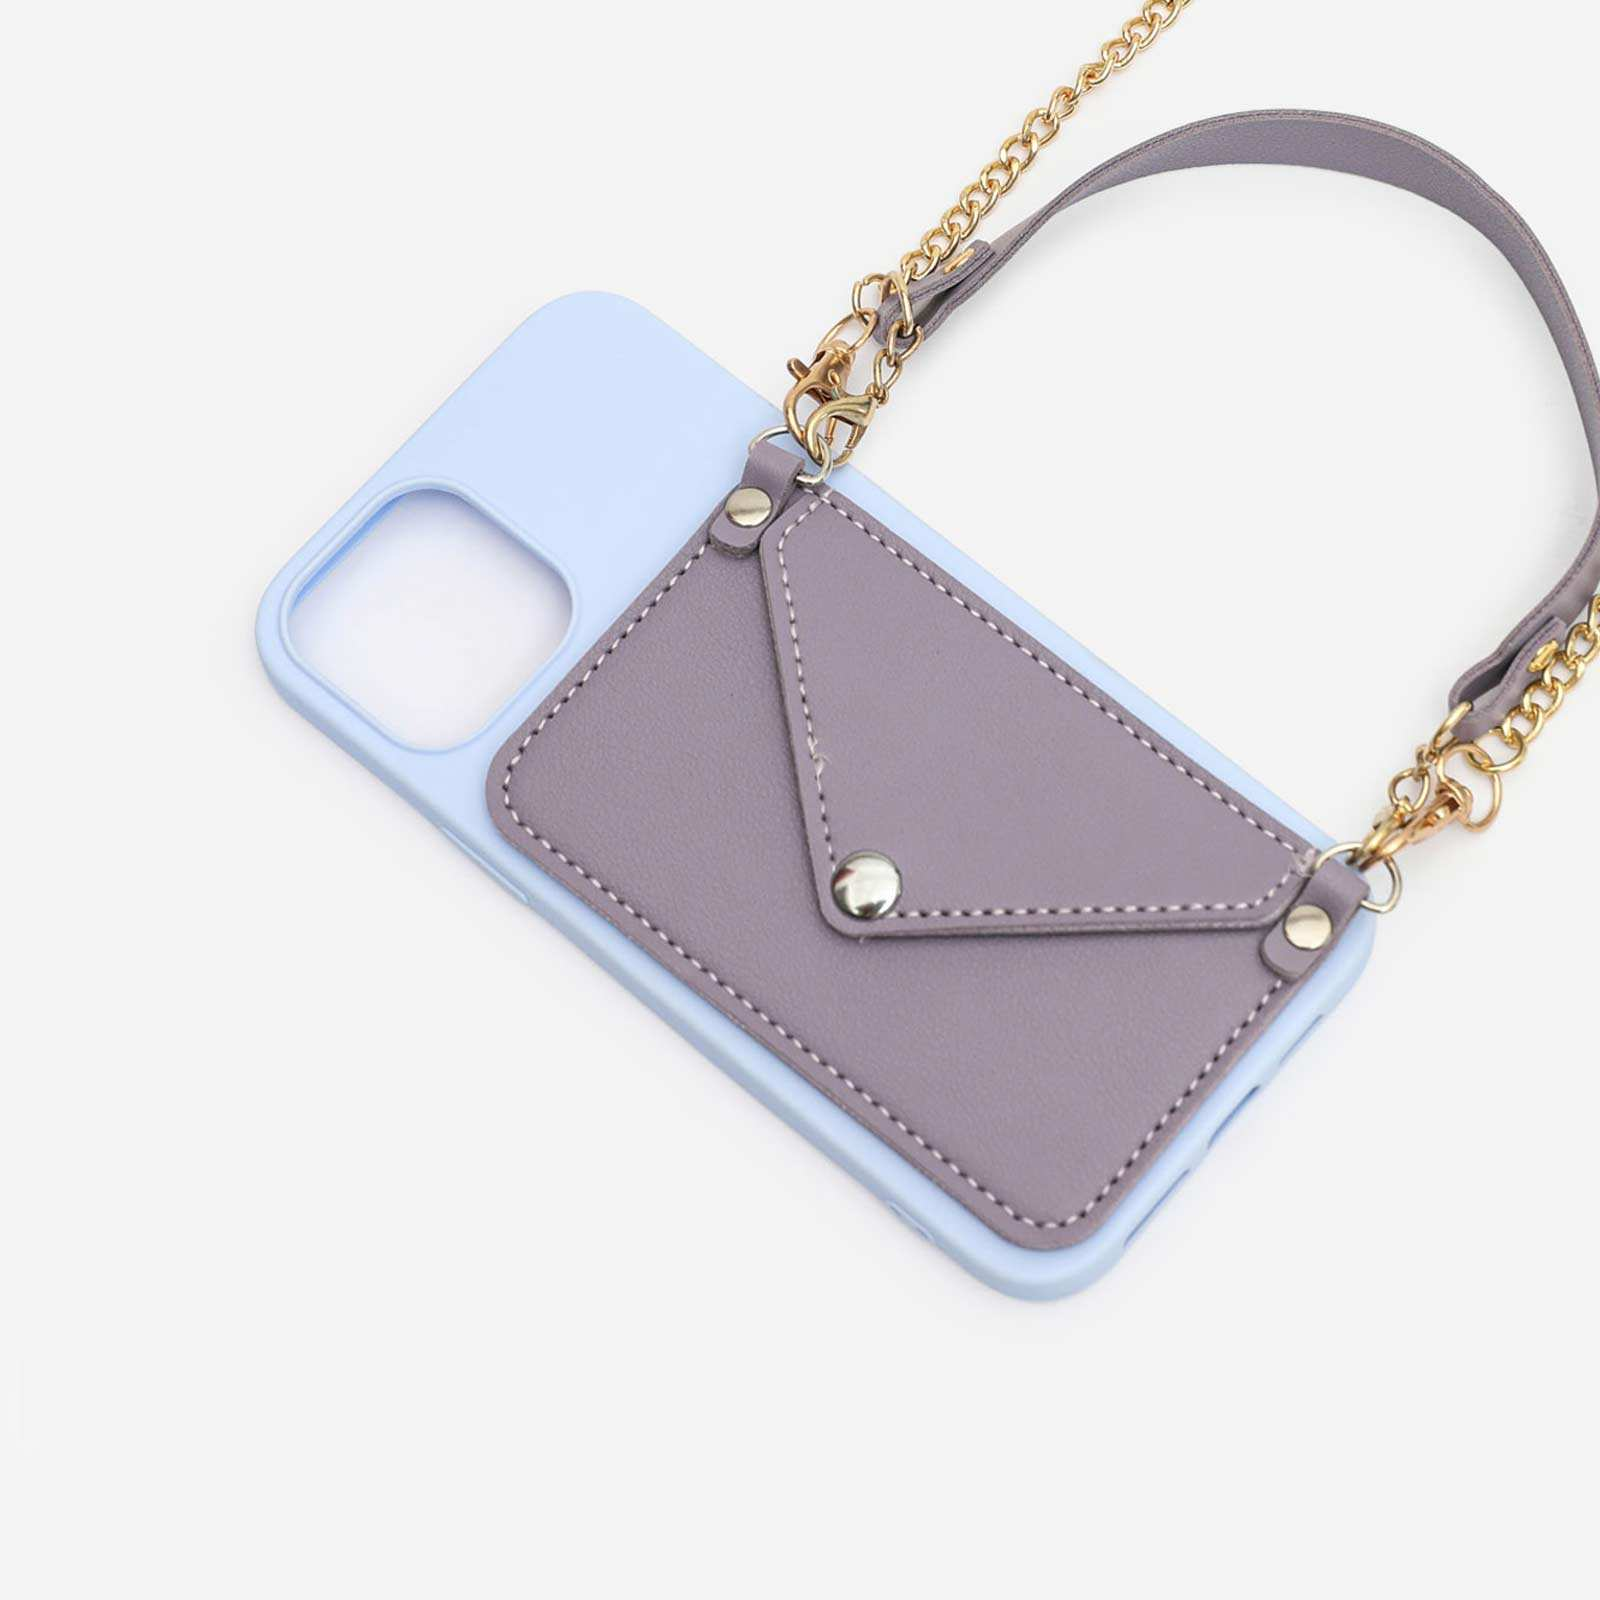 Pocket Detail With Handle Phonecase In Lilac. iPhone 12 Pro Max